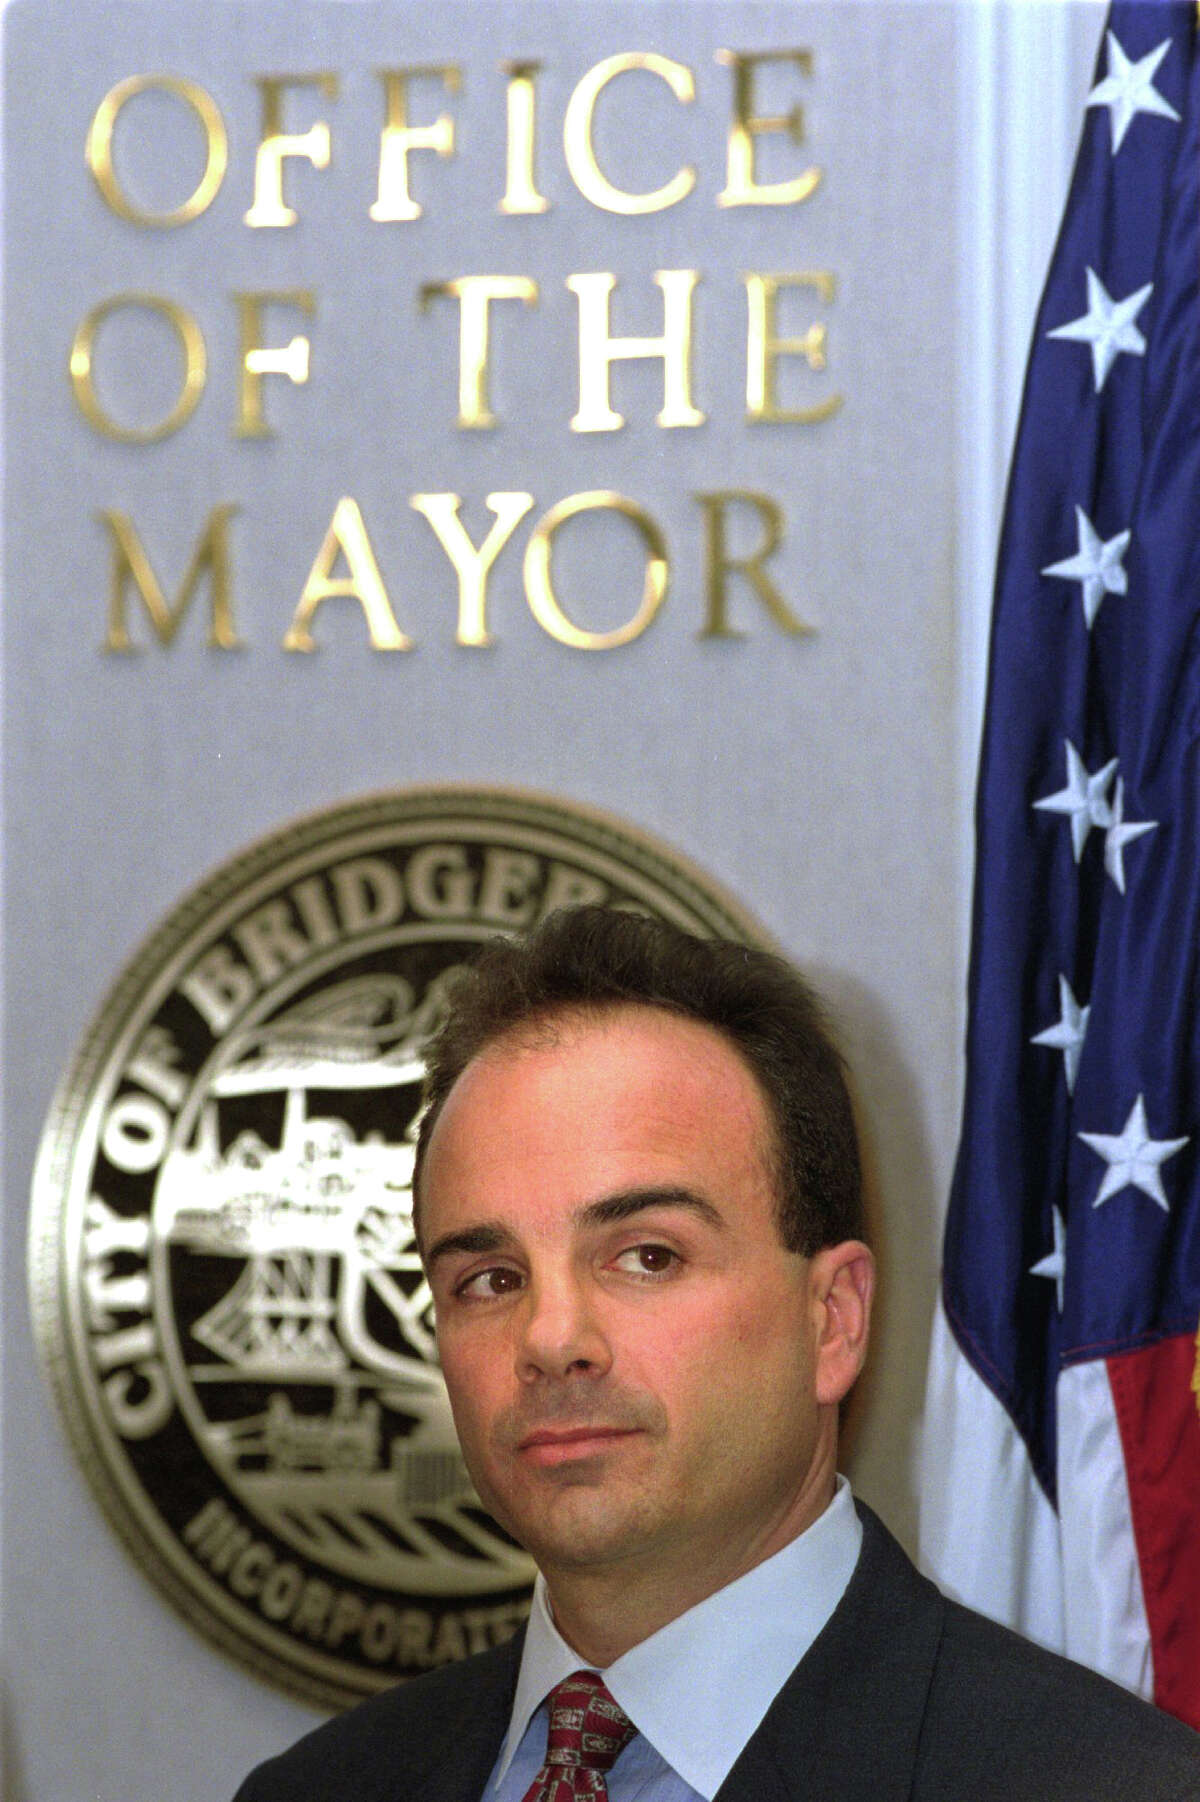 Bridgeport Mayor Joseph P. Ganim looks on Oct. 31st, 2001, during a press conference outside the Office of the Mayor at City Hall Annex on the day a federal grand jury indicted him on 24 felony charges including racketeering, bribery, extortion, mail fraud and tax evasion.